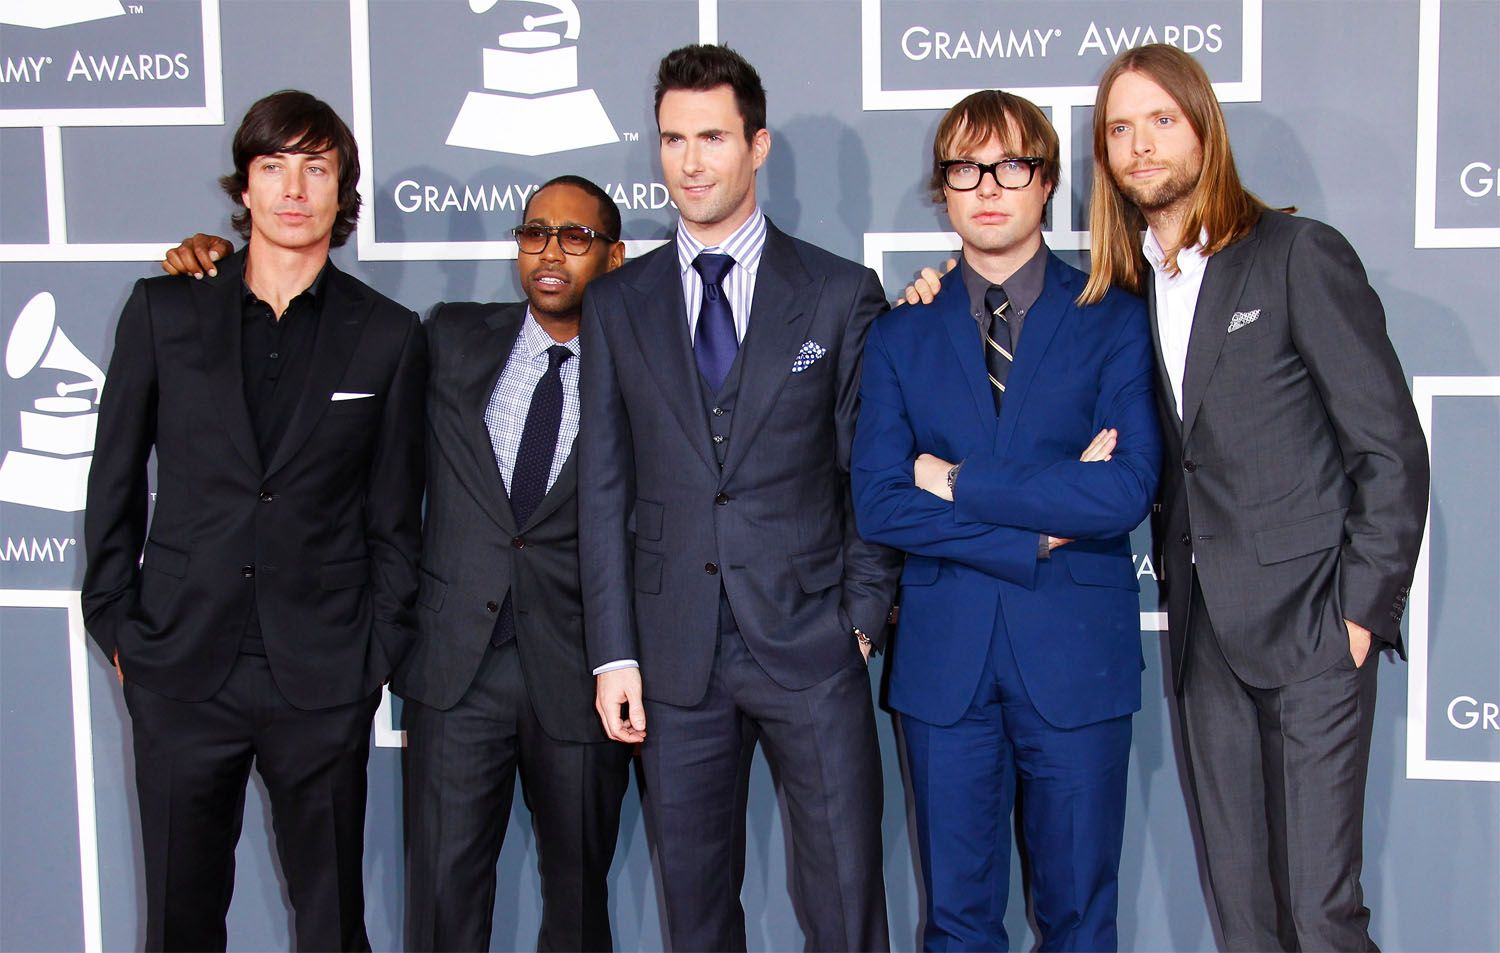 Maroon 5 To Perform At 2014 Mtv Vmas For First Time After Past